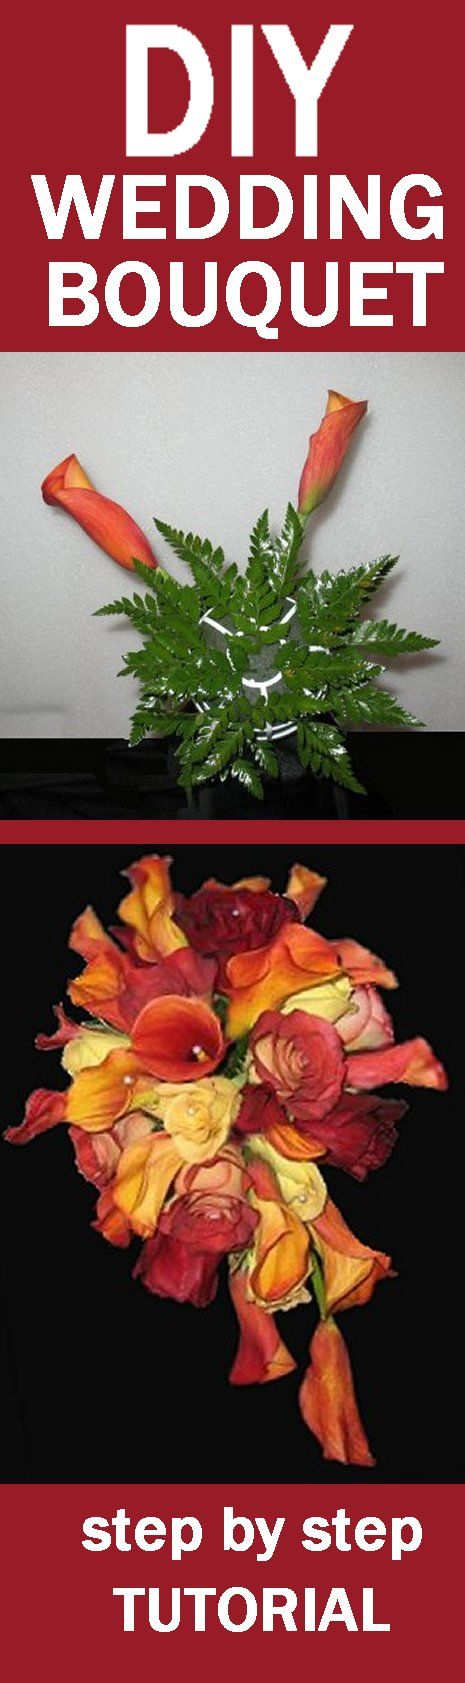 Fall Wedding Bouquet - Free Fresh Flower Tutorials  Learn how to make bridal bouquets, wedding corsages, groom boutonnieres, church decorations and reception centerpieces.